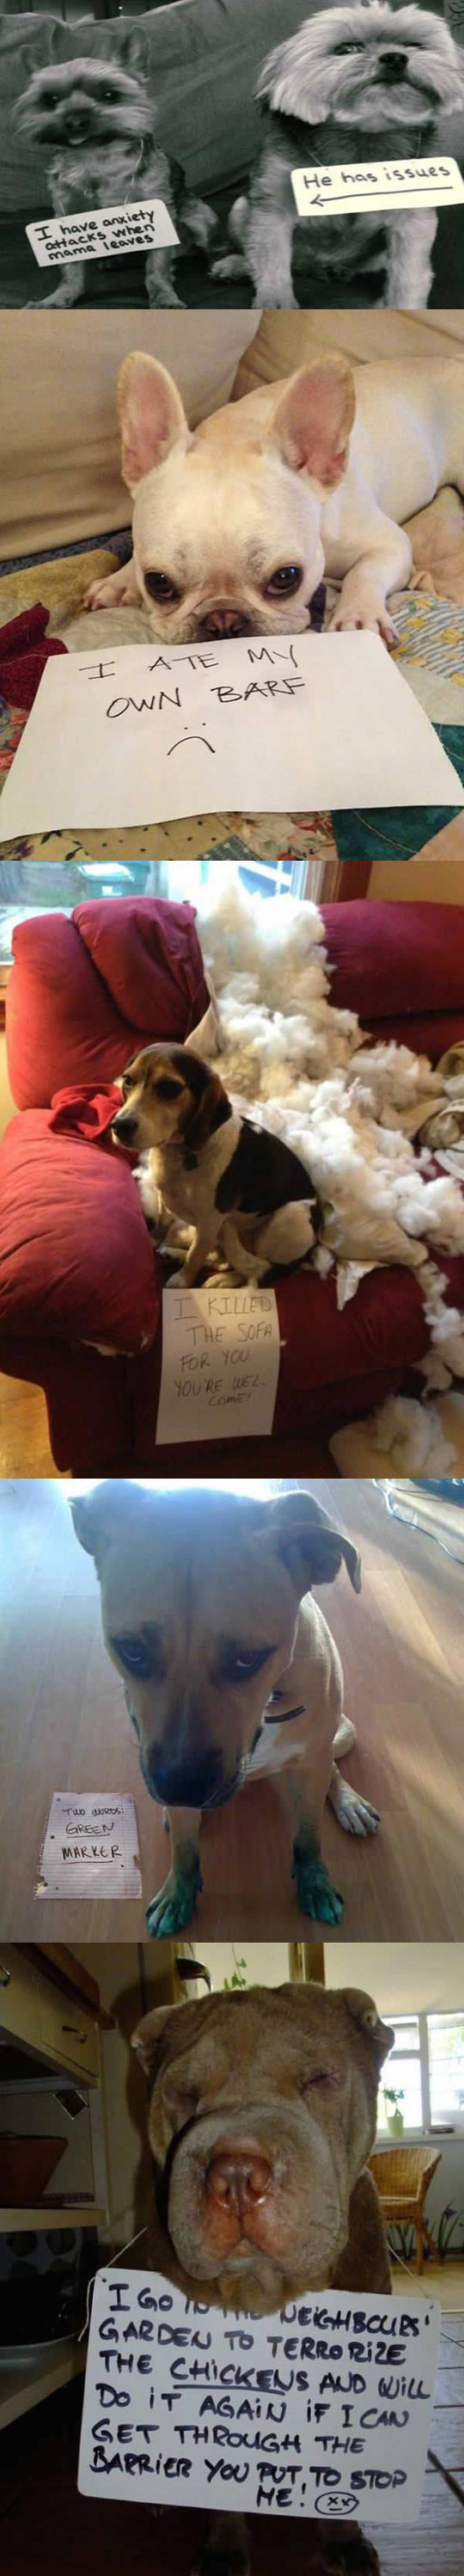 funny-note-shame-dogs-mess-confessions